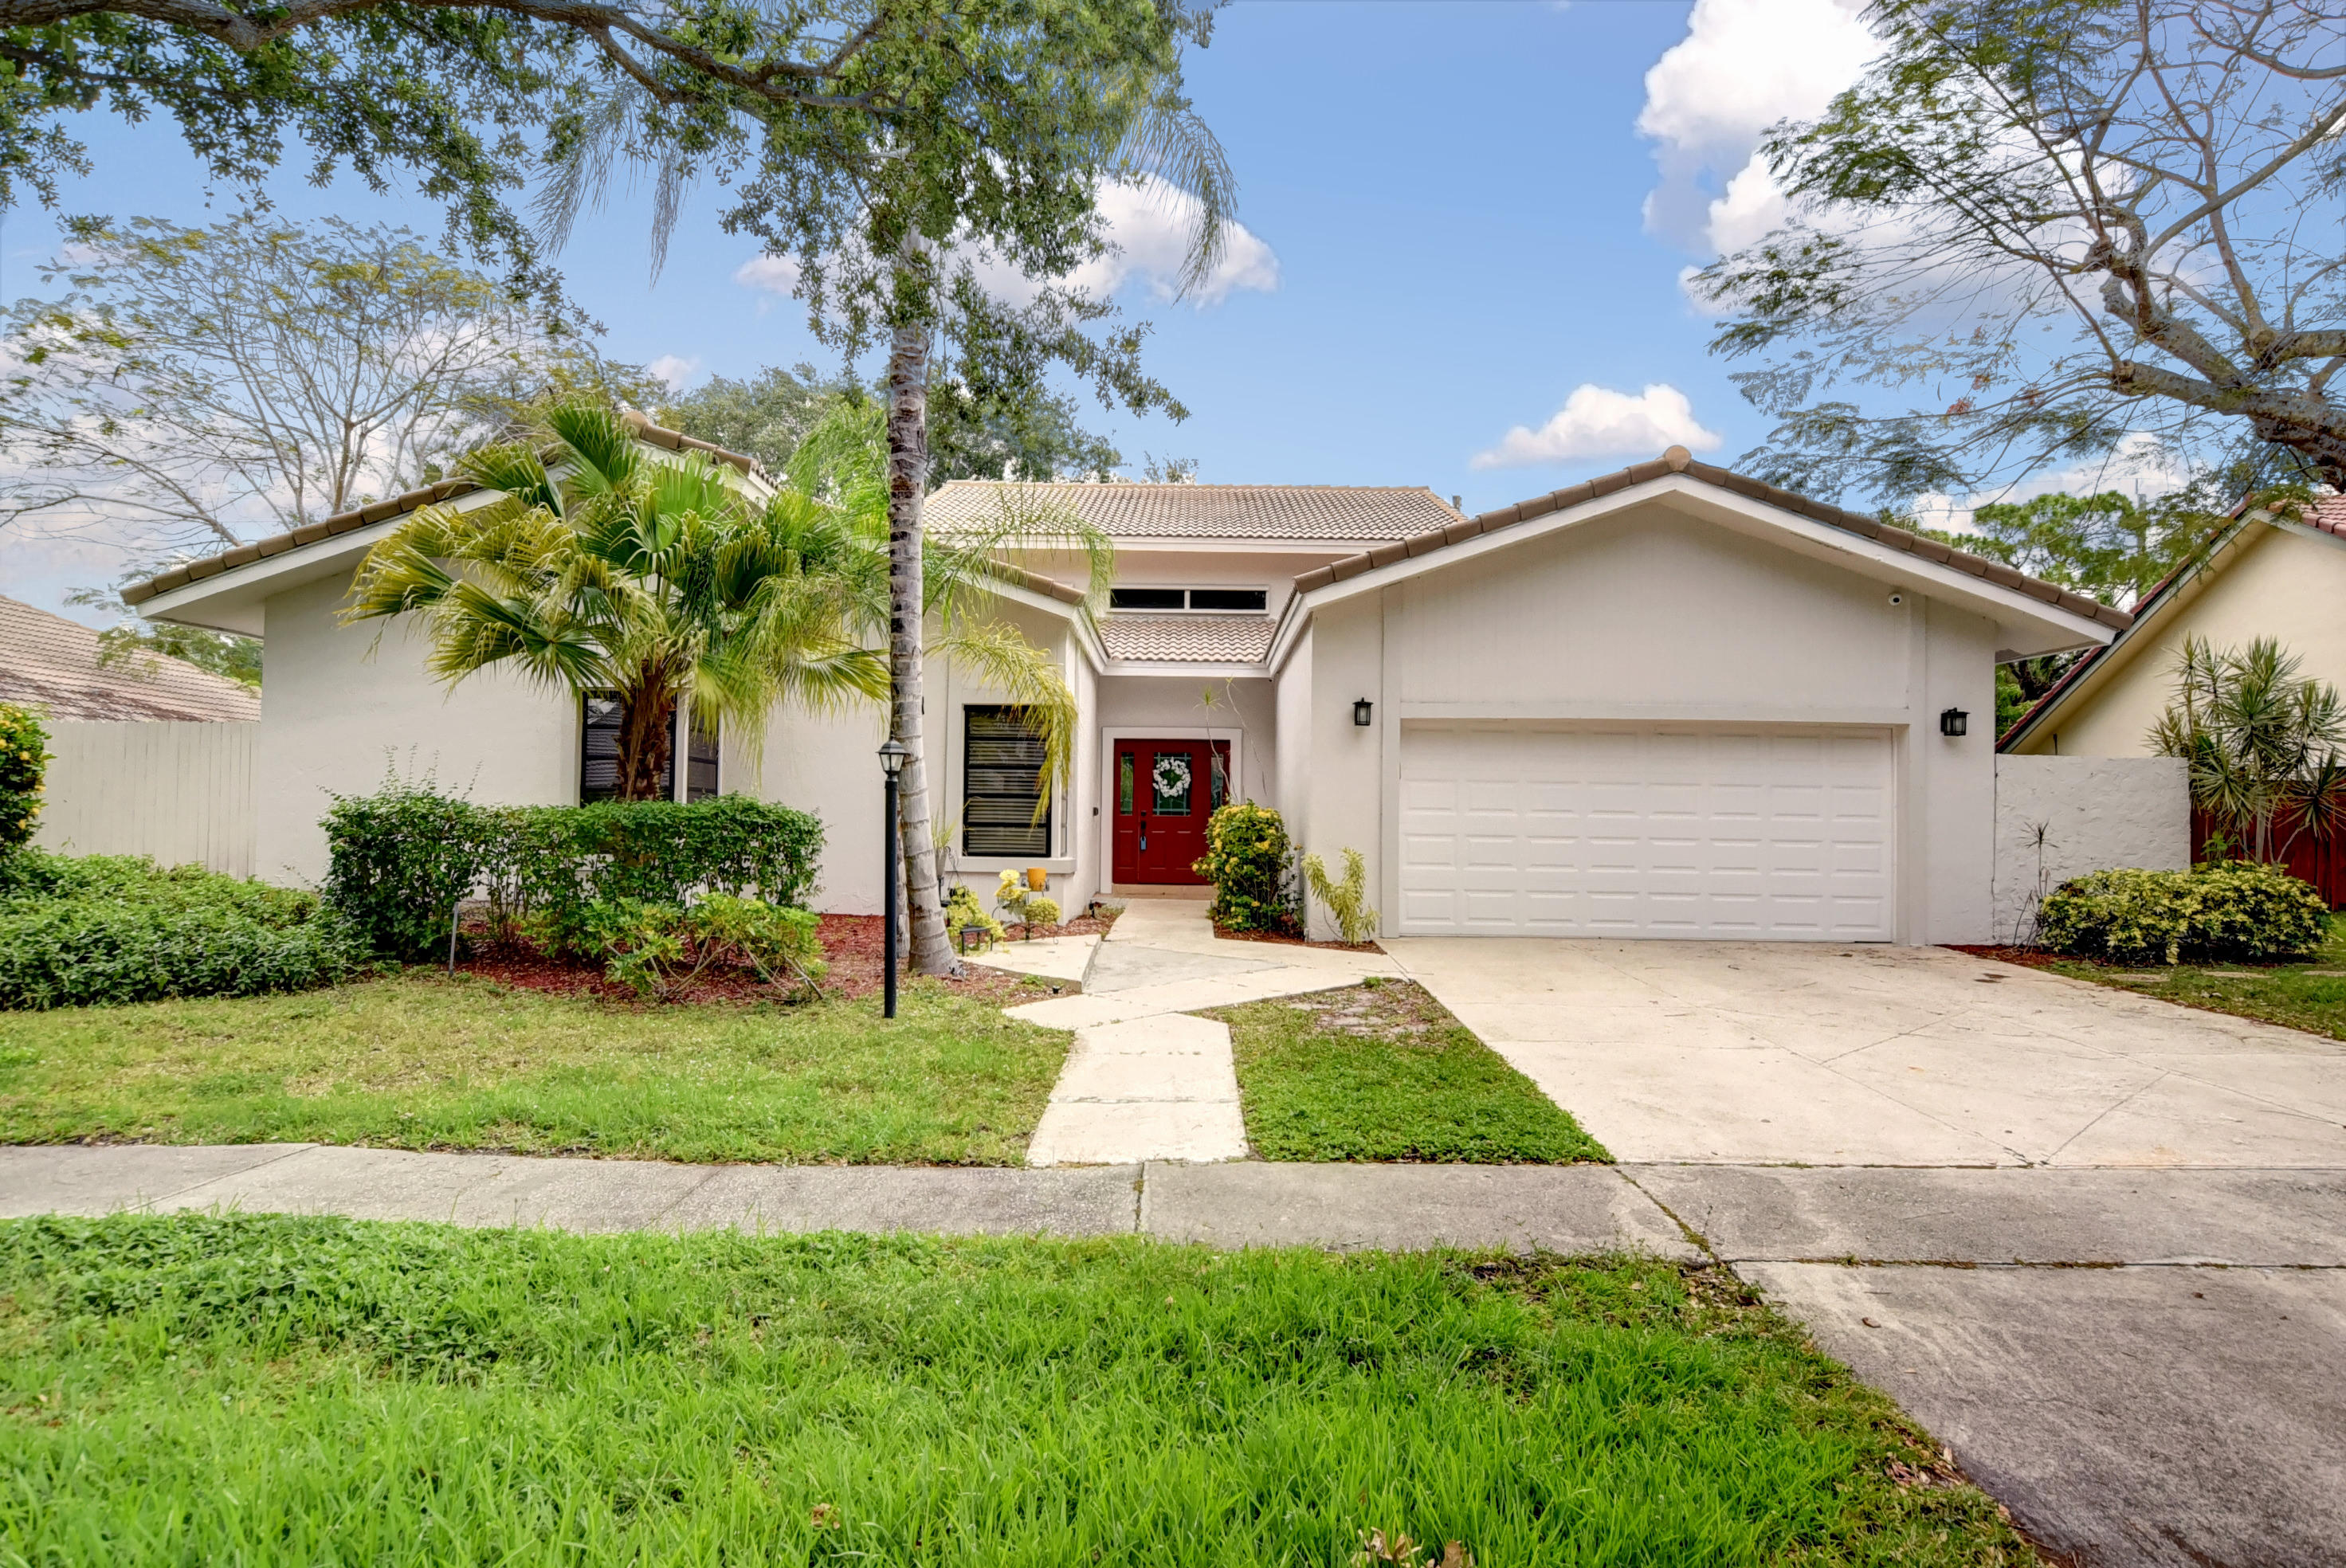 Home for sale in Colonnade Boca Raton Florida